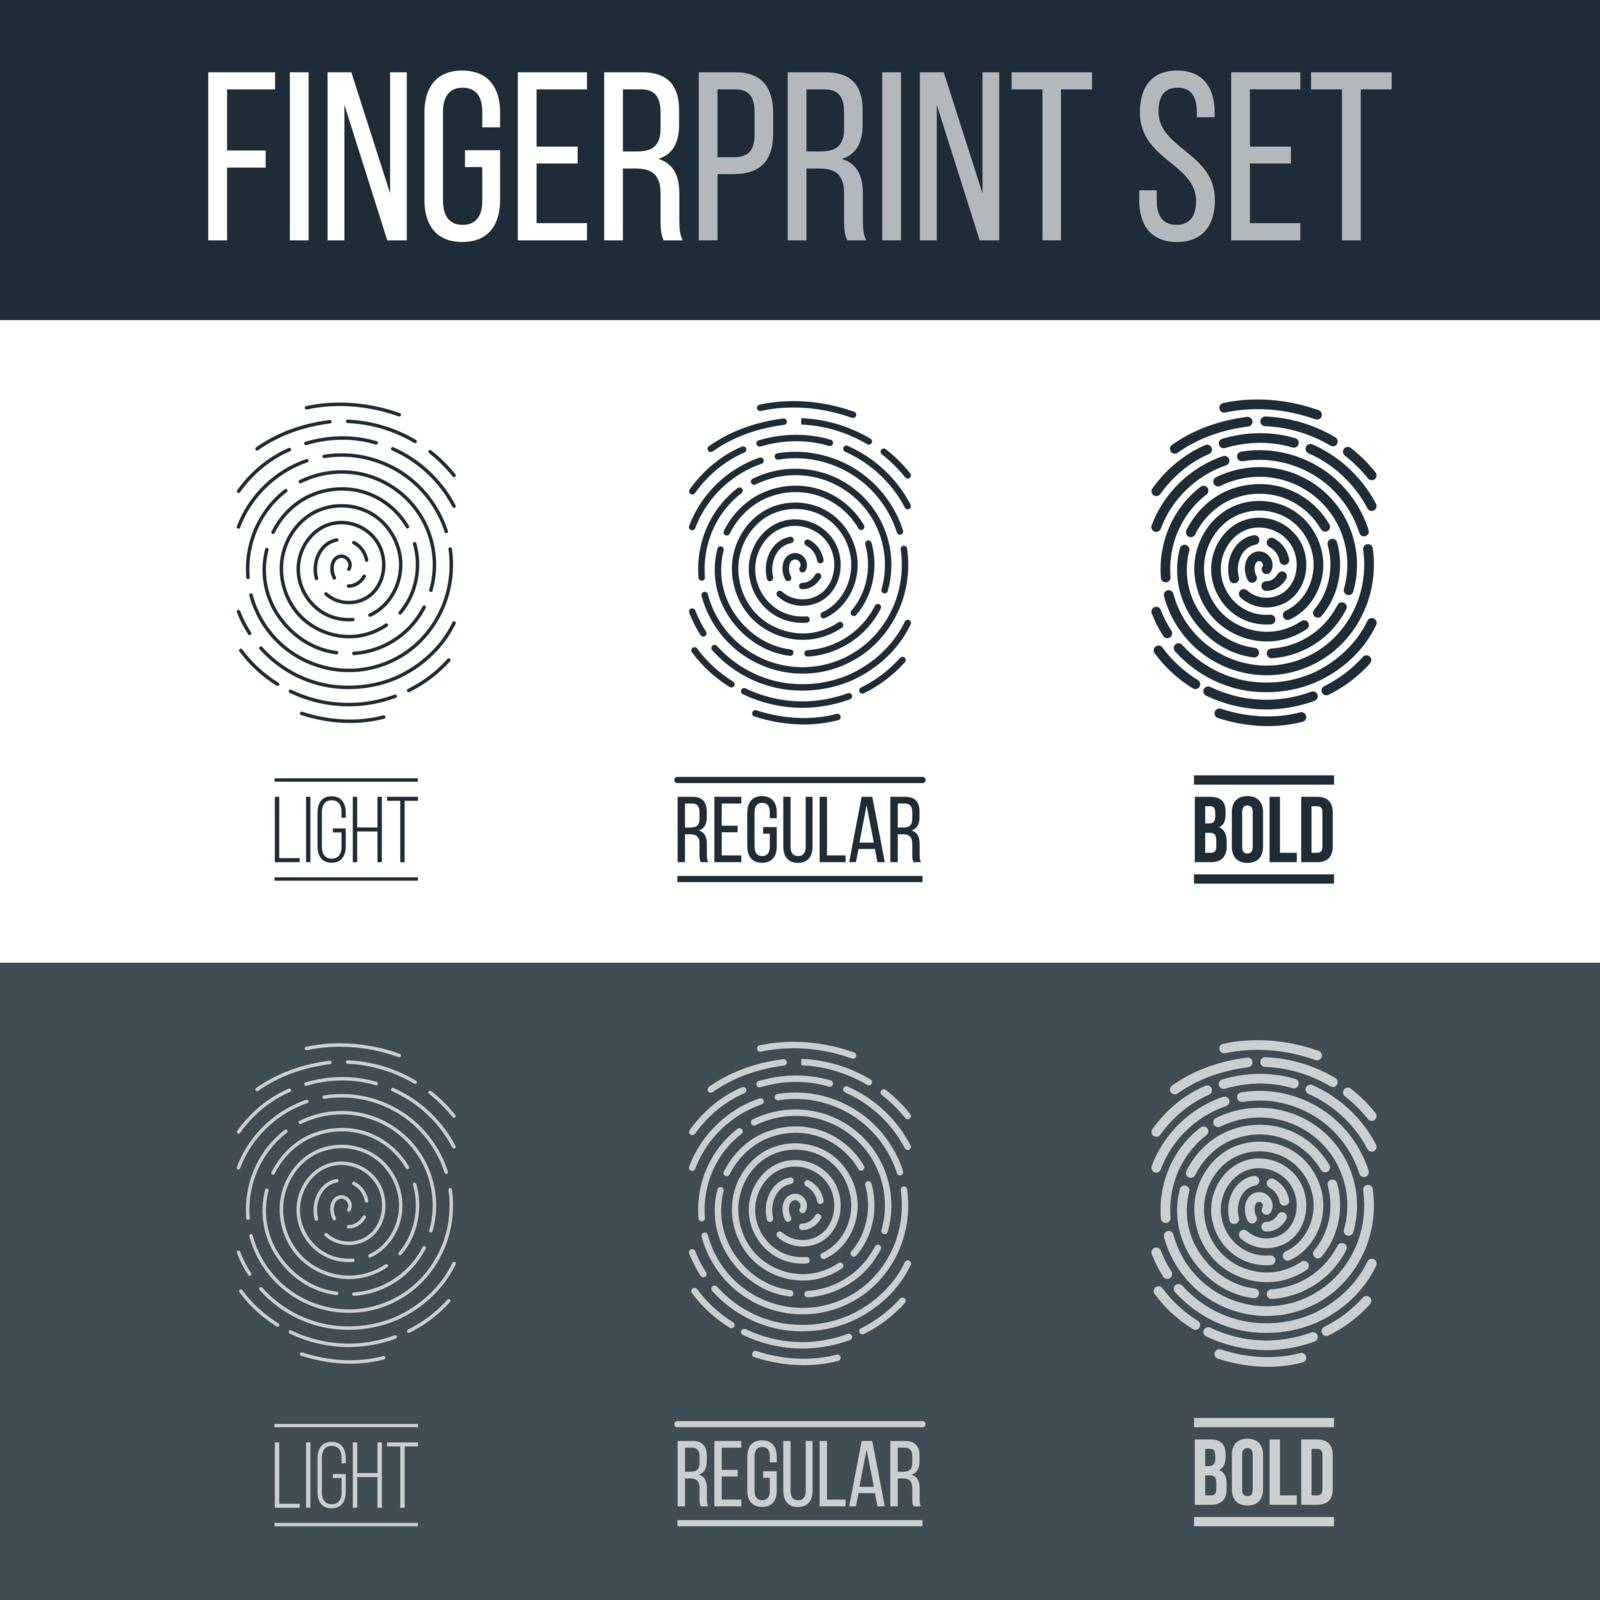 Set of Fingerprints for Identity Person Security ID on Dark and White Background